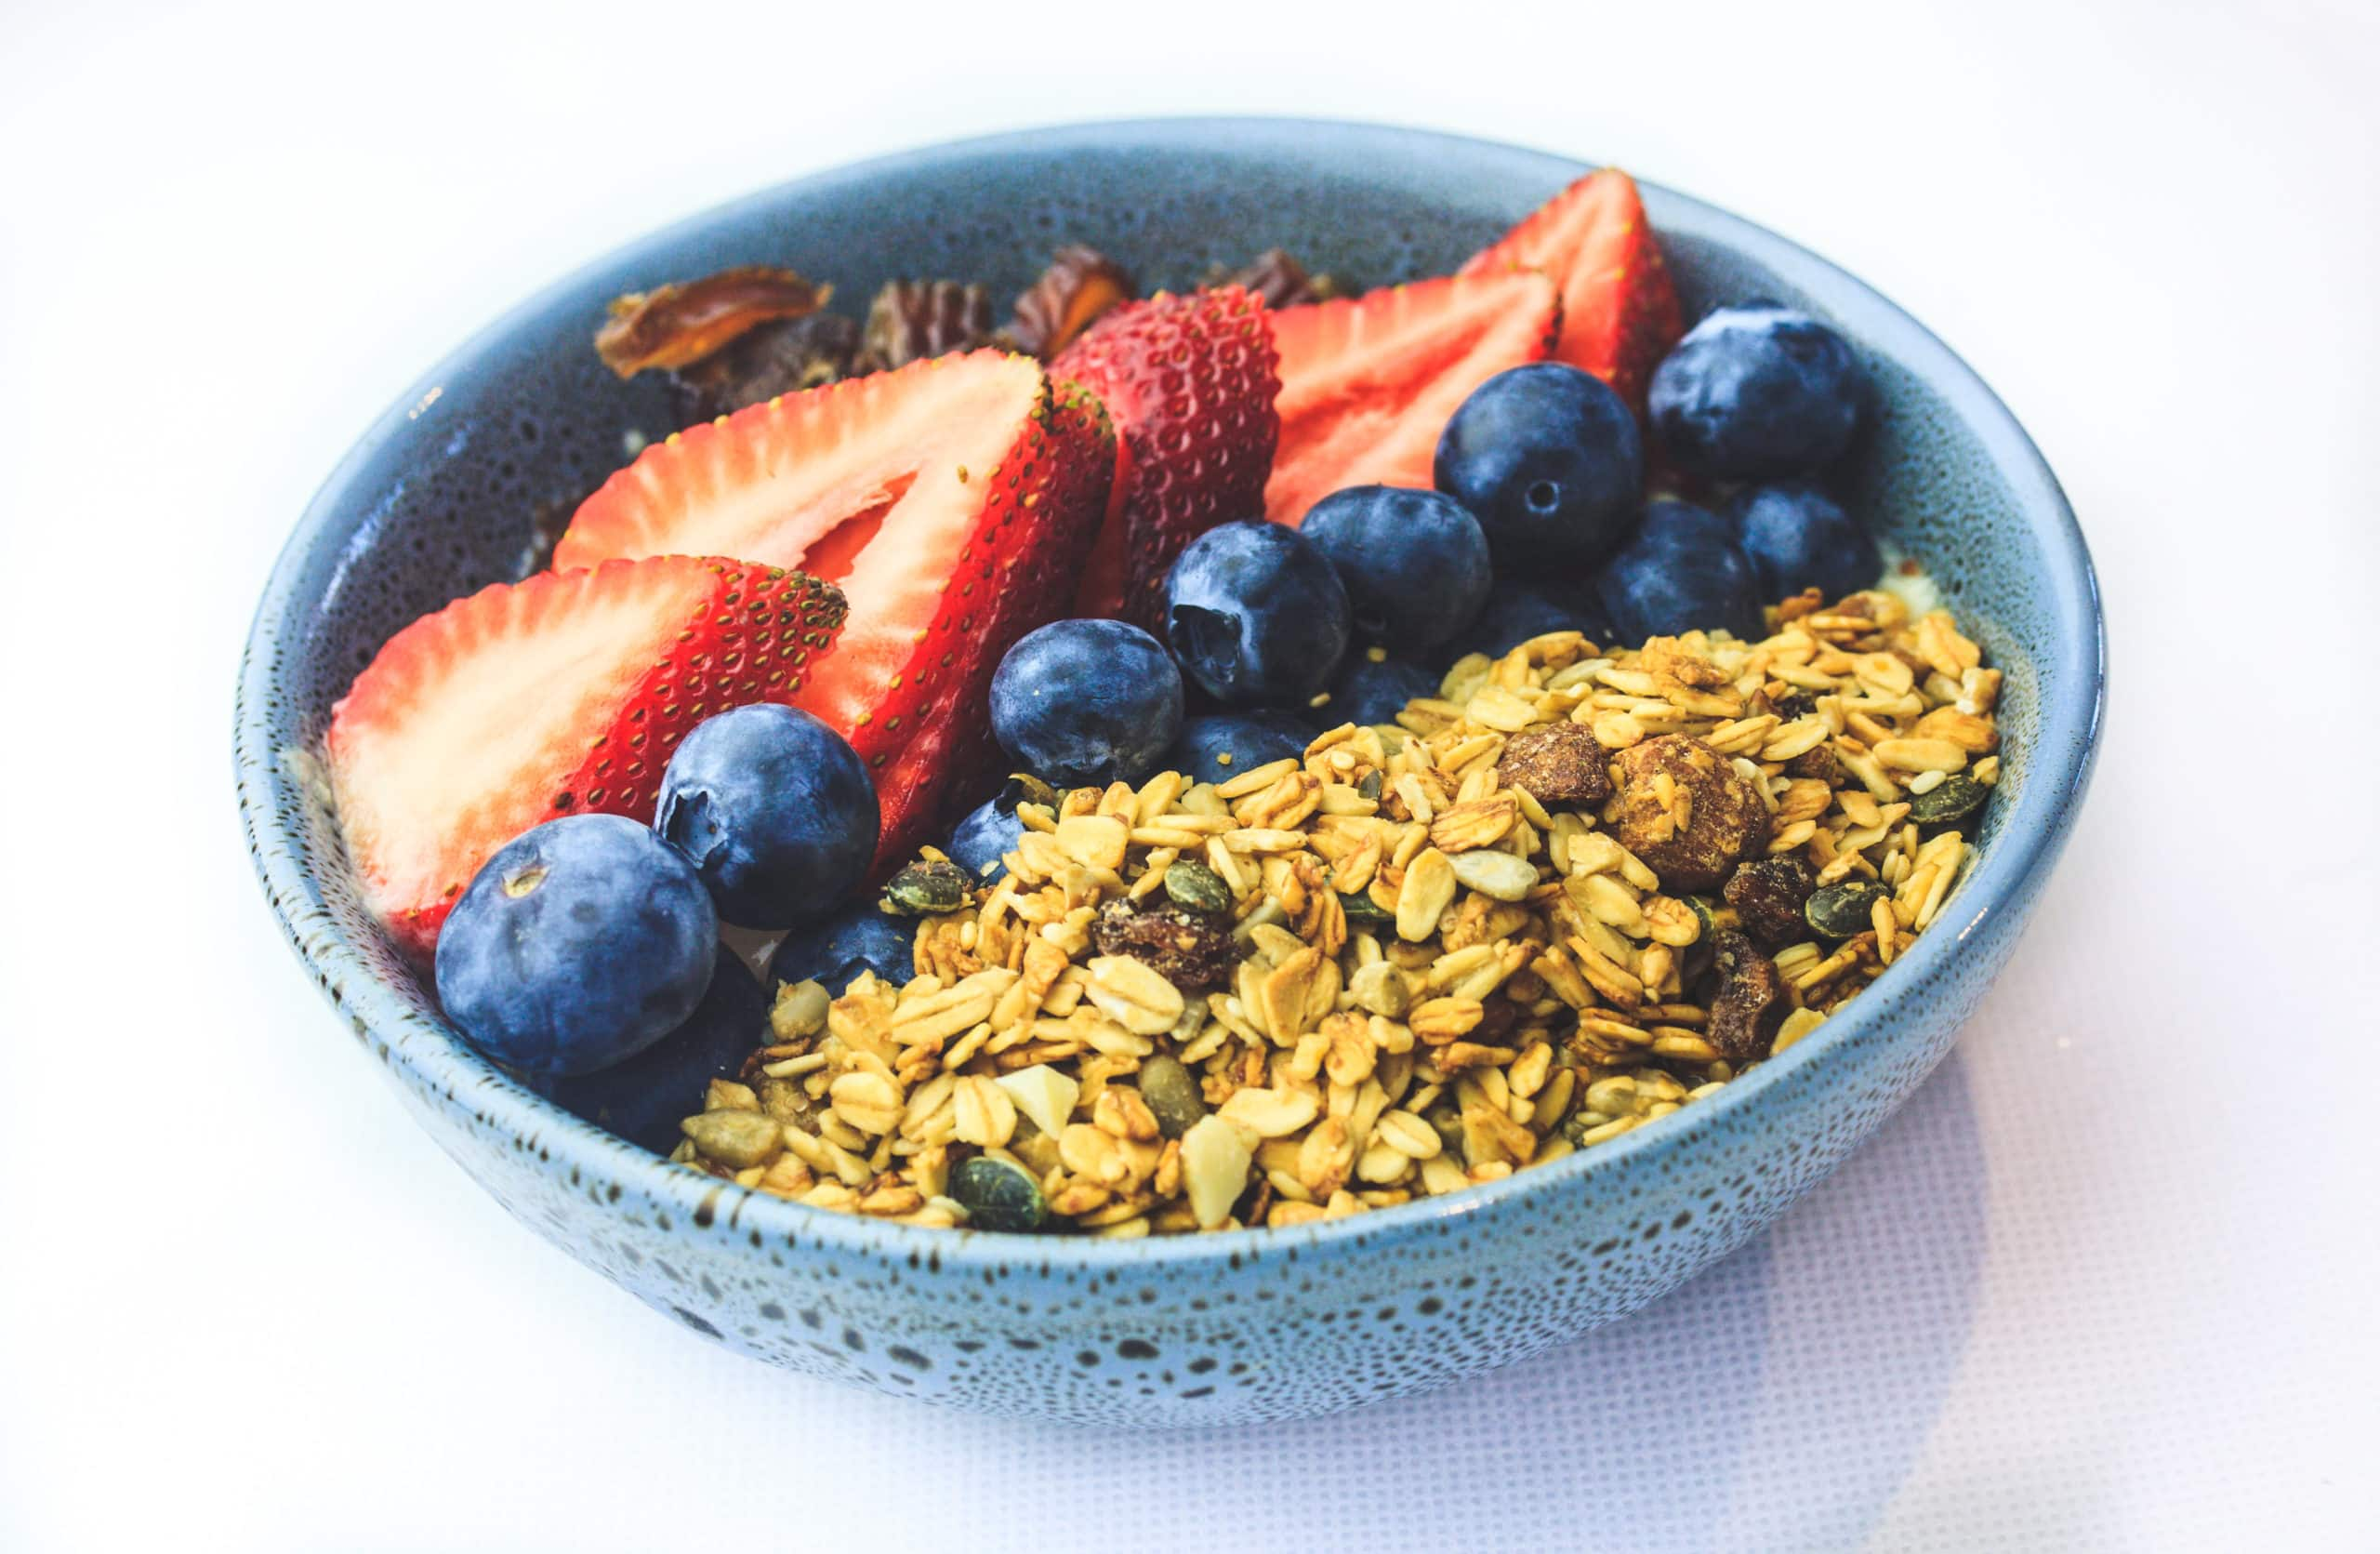 a blue bowl filled with oatmeal and fresh fruit